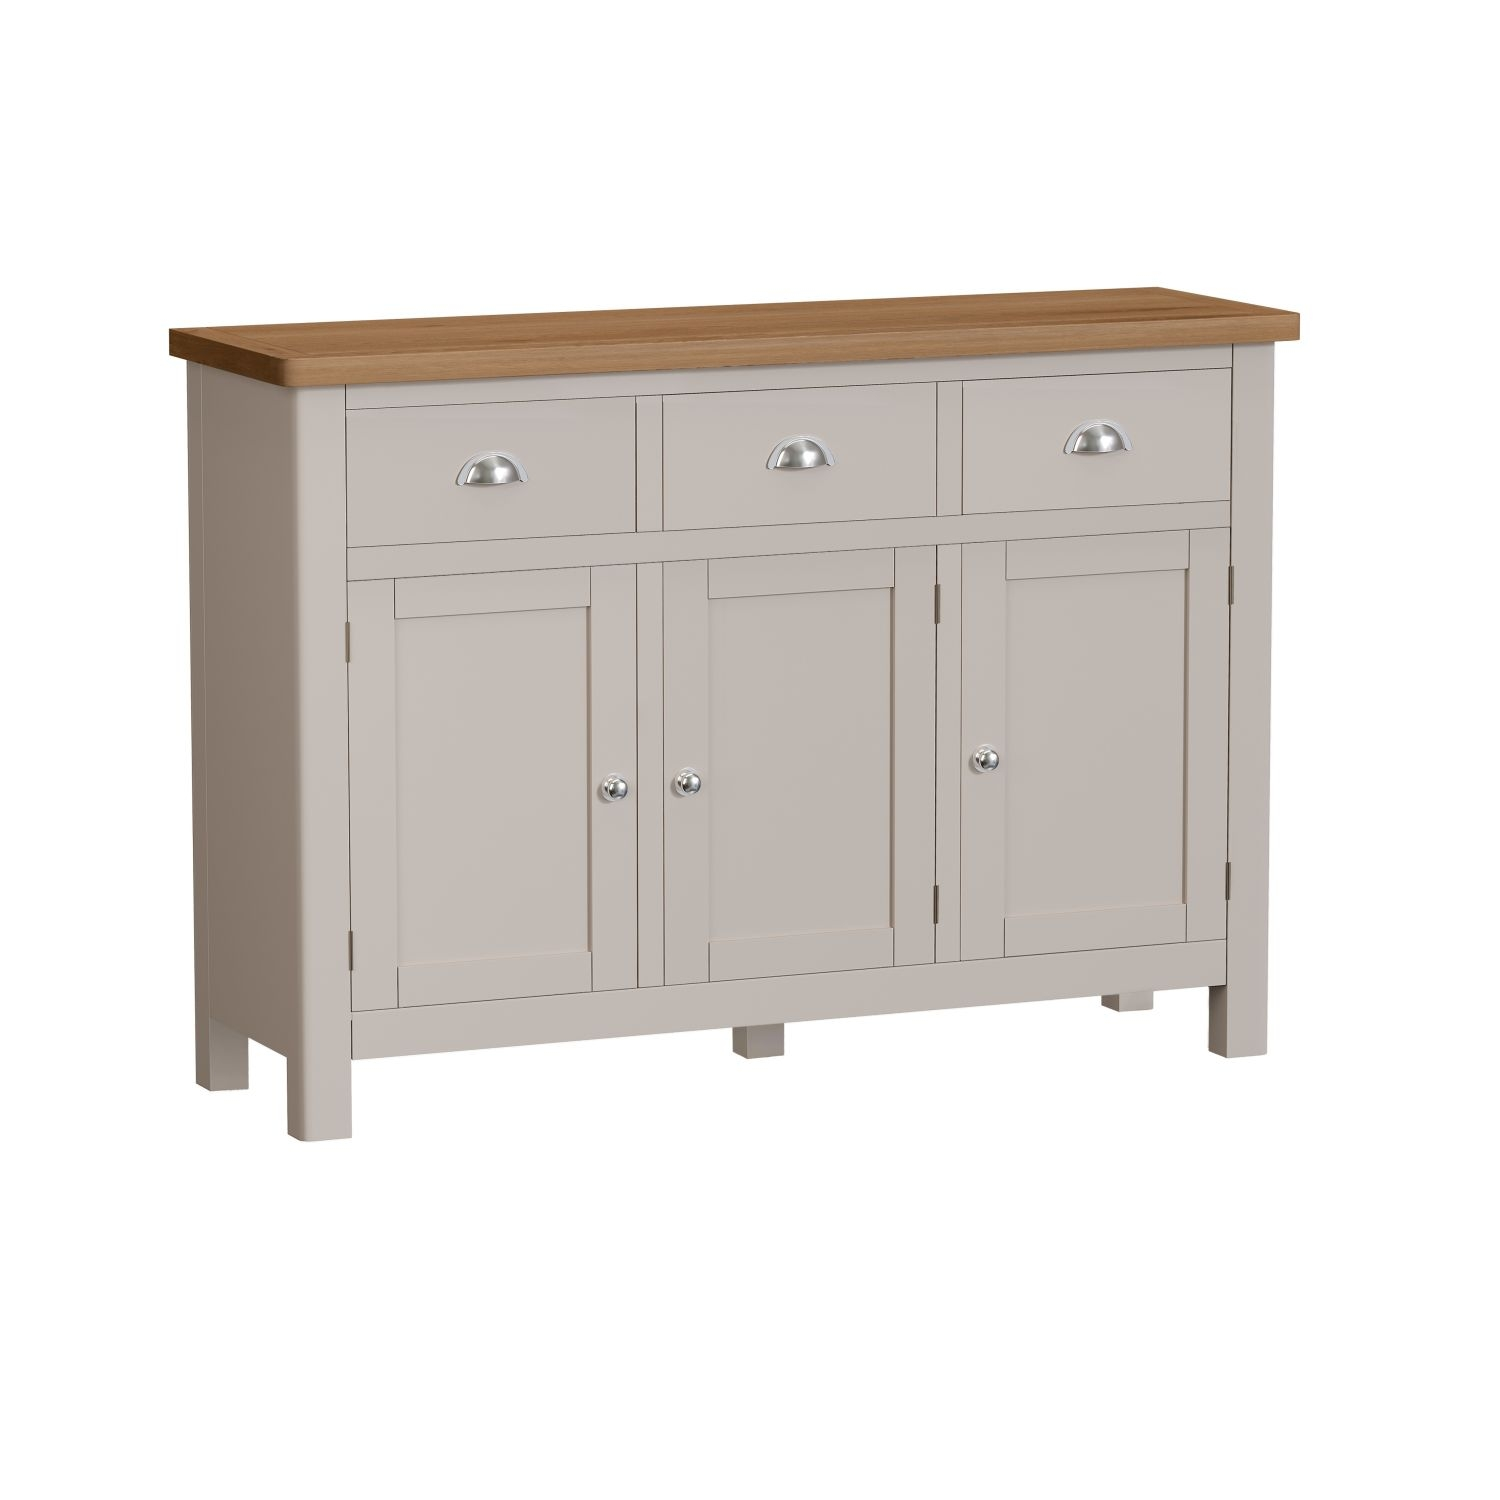 Image of Casa Portland Large 3 Door Sideboard